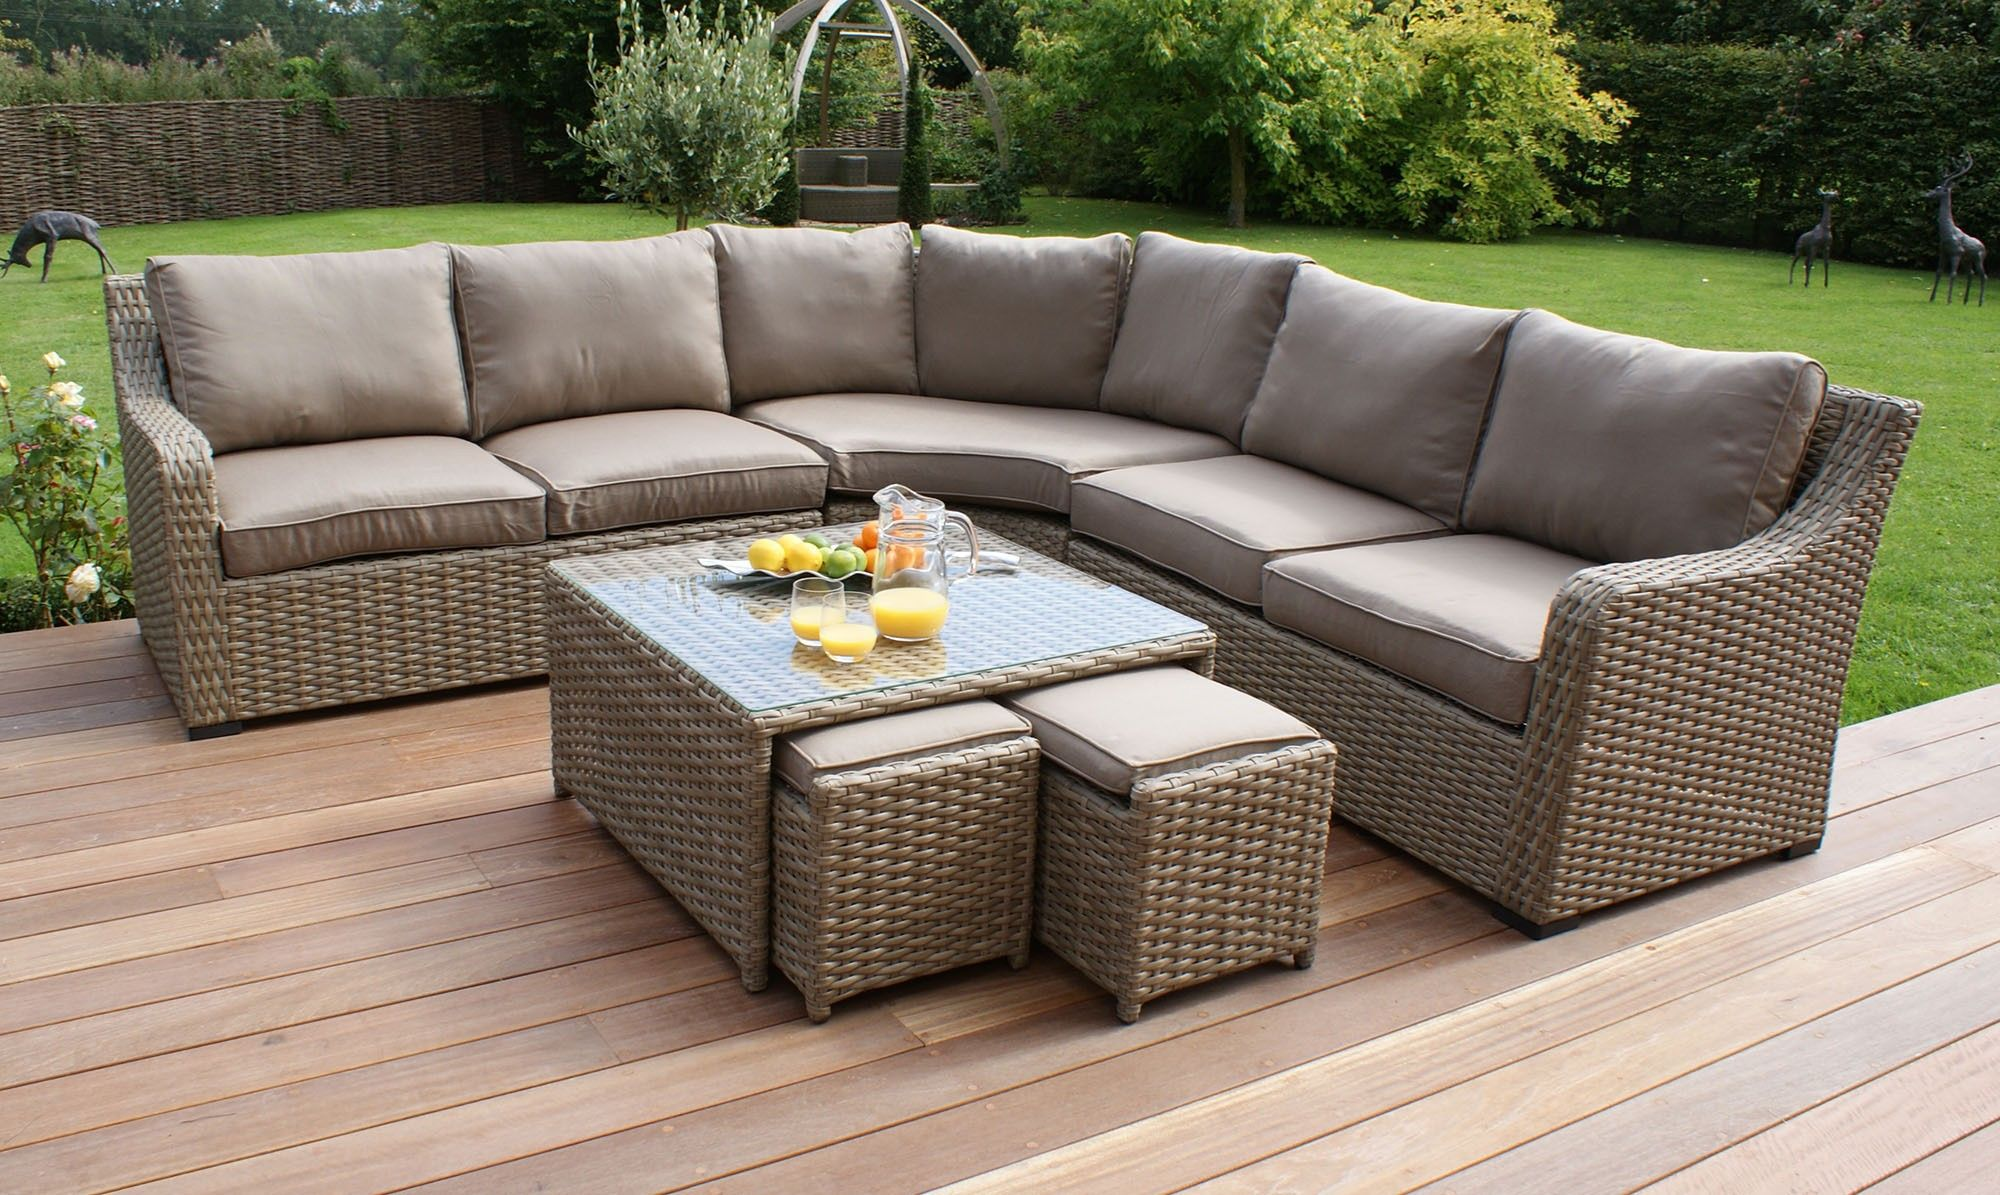 Rattan Outdoor Furniture Sale Americas Best Furniture Check more